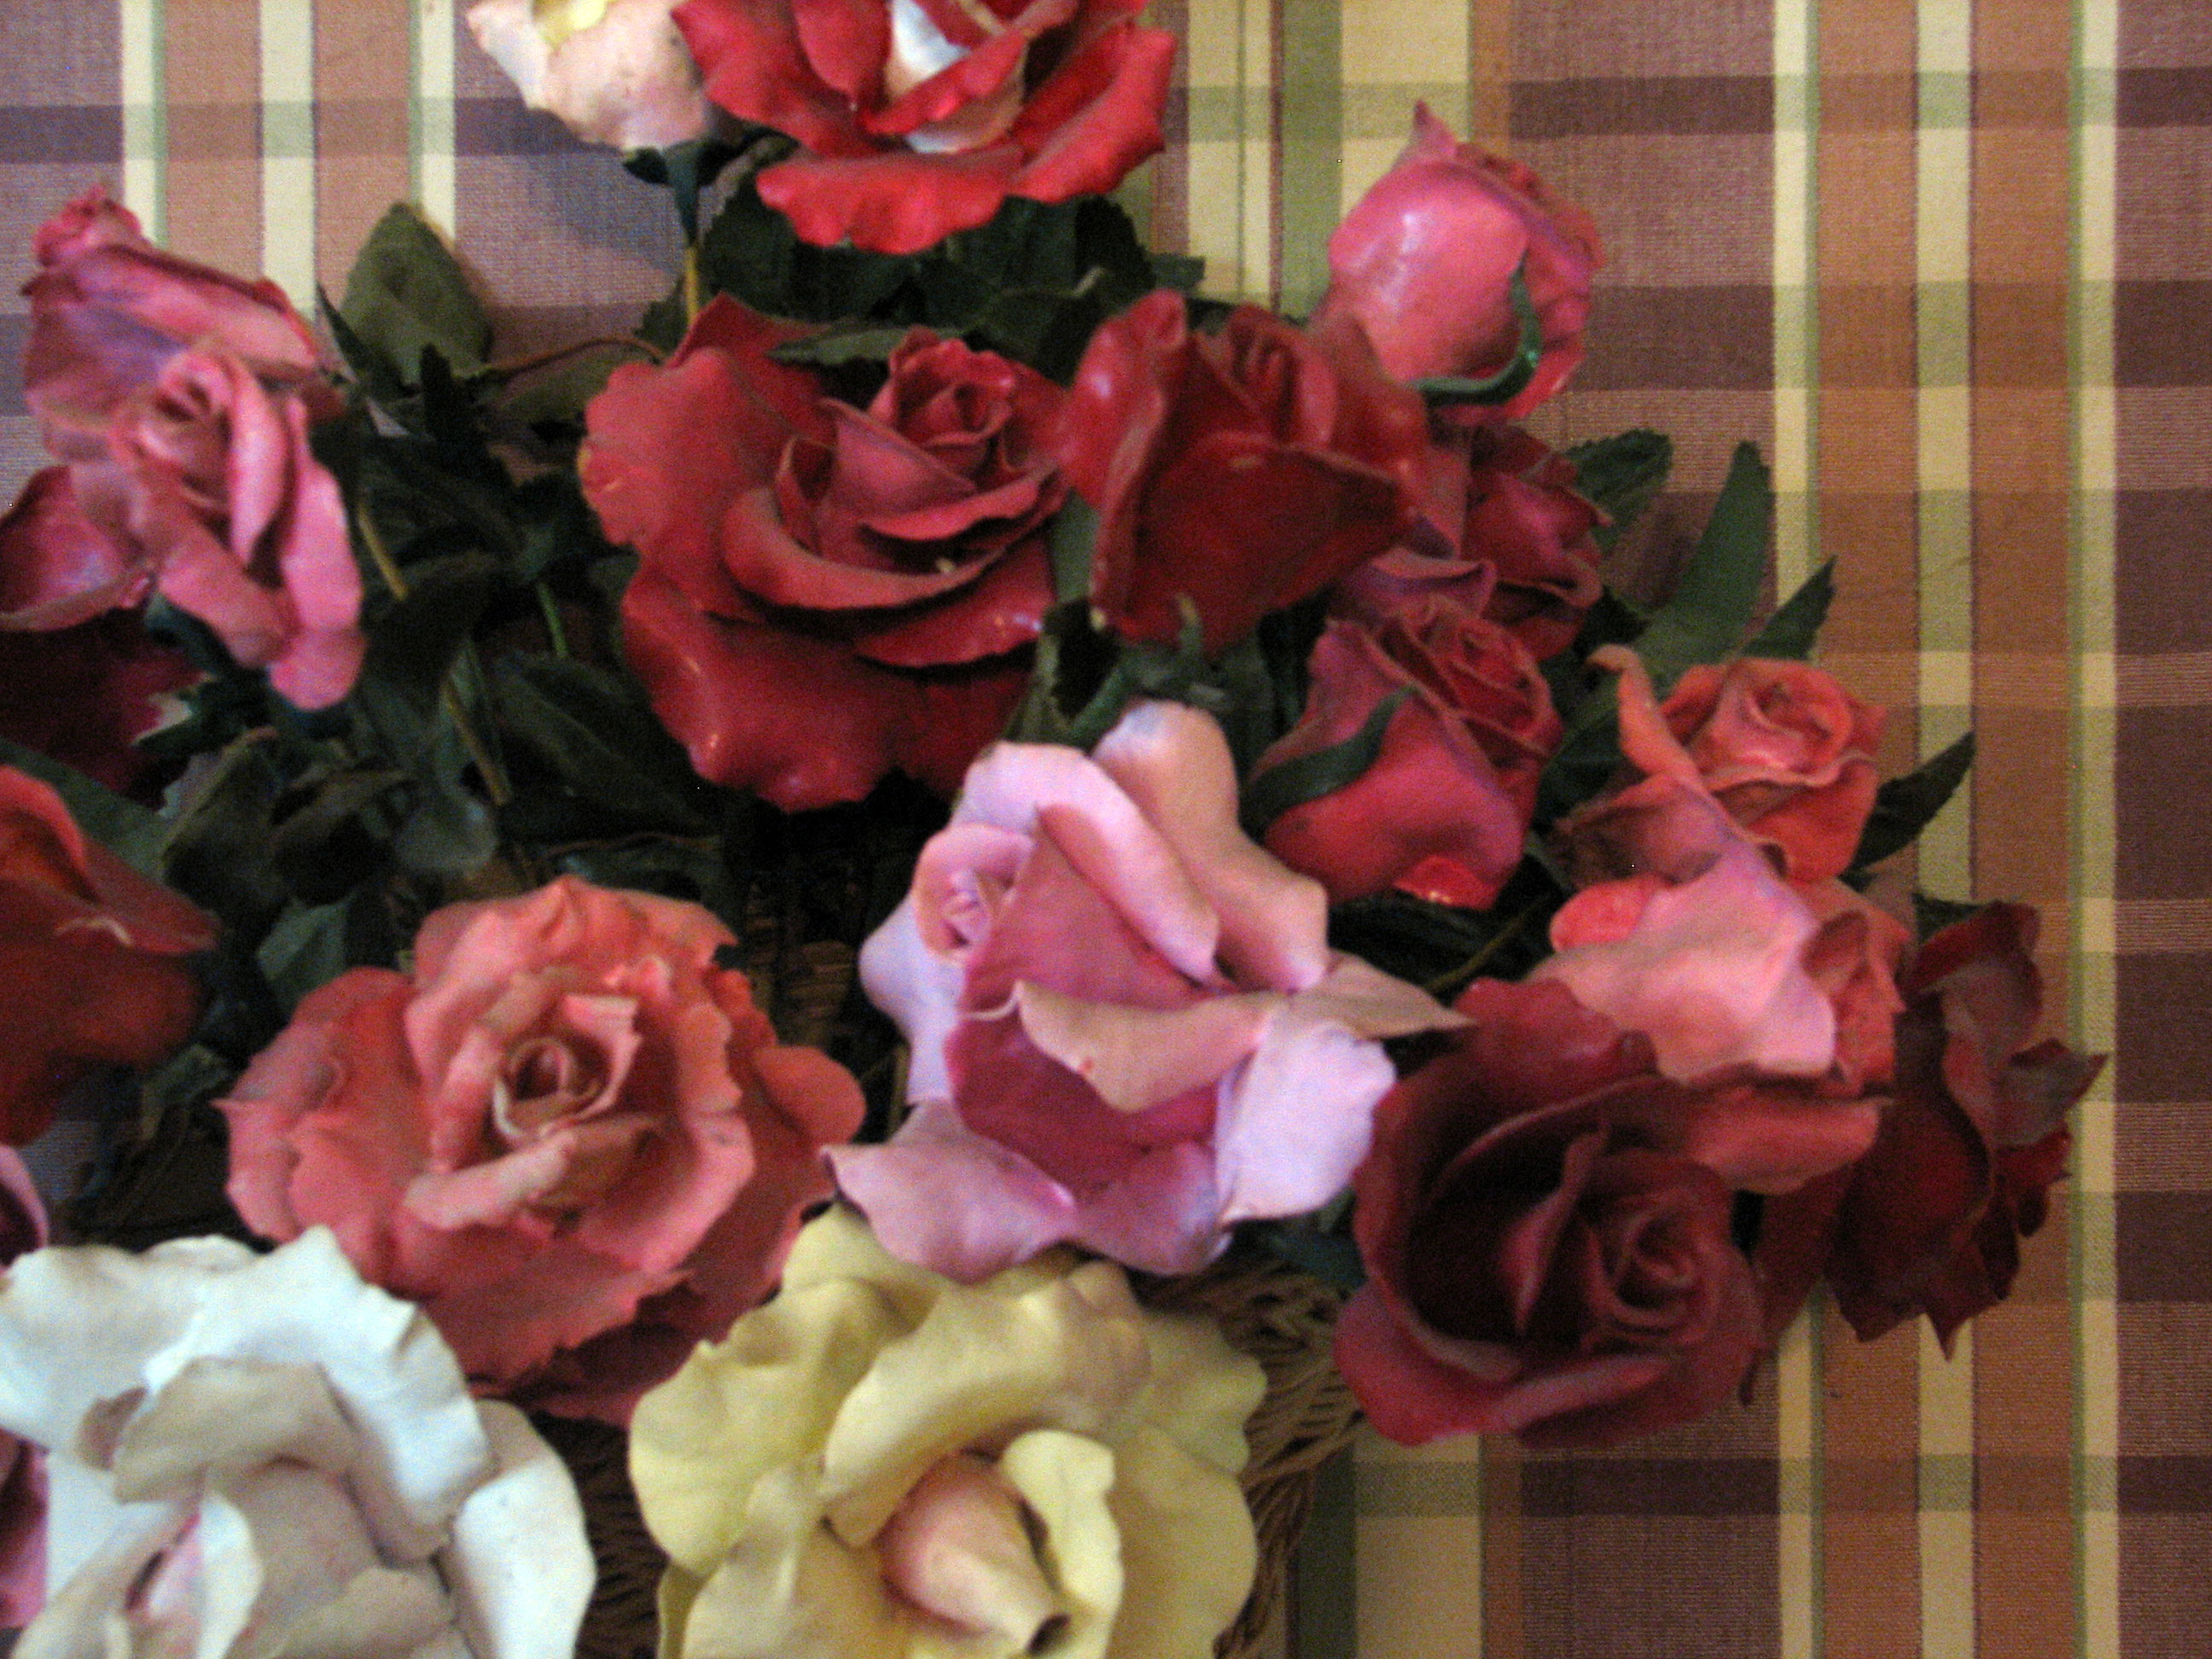 Click here to download a 2592 x 1944 JPG image showing some clay roses Dan made.